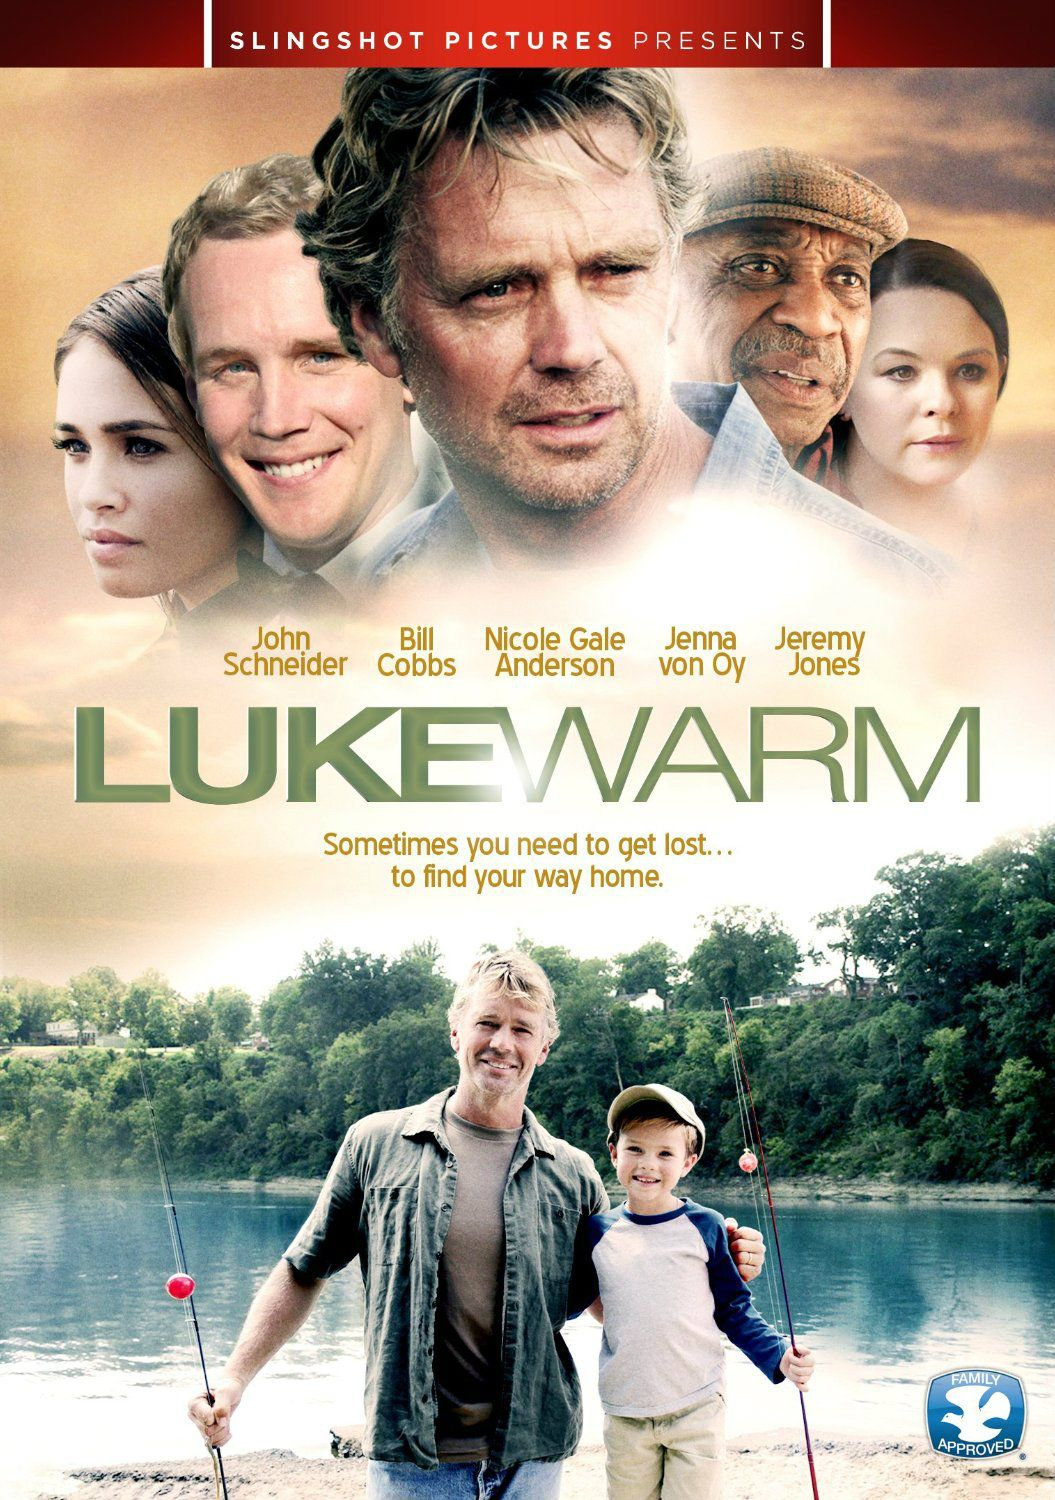 Lukewarm - Christian Movie/Film DVD John Schneider in 2019